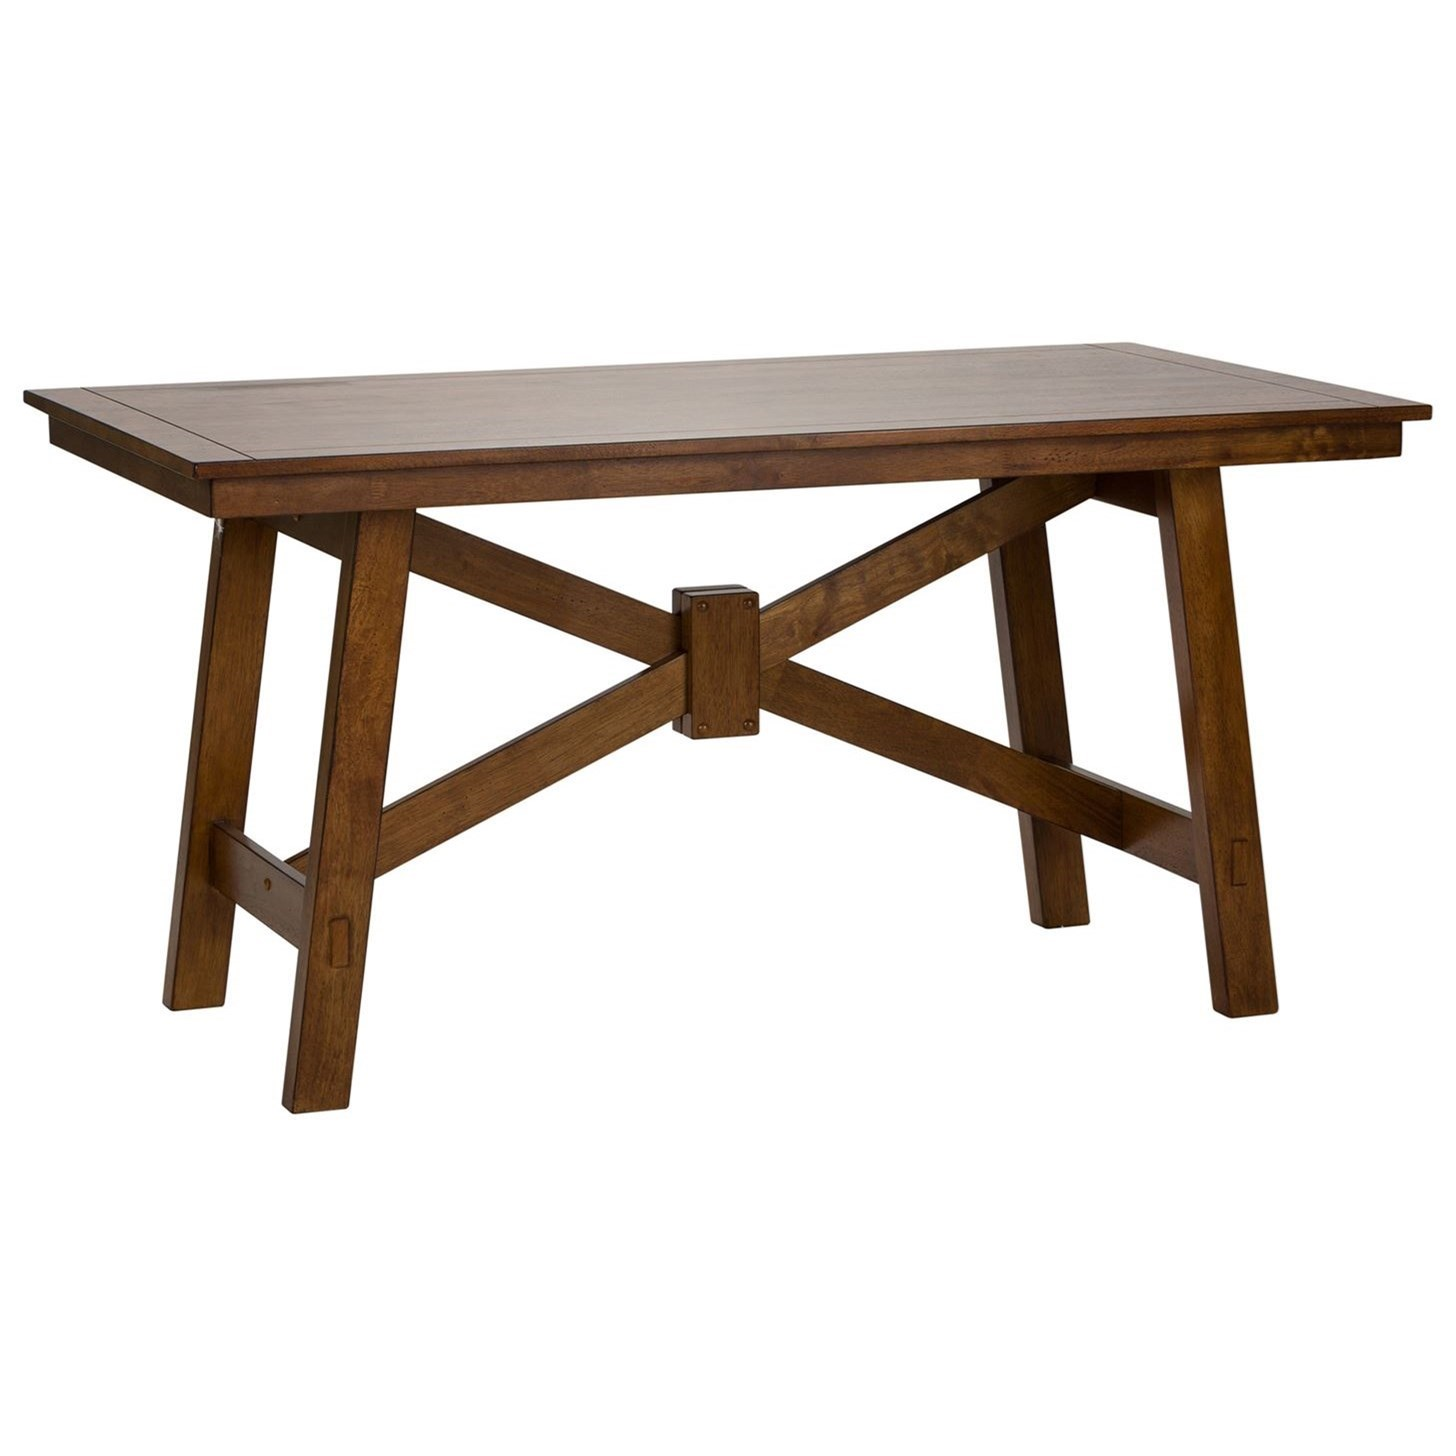 Creations II Rectangular Trestle Table by Libby at Walker's Furniture